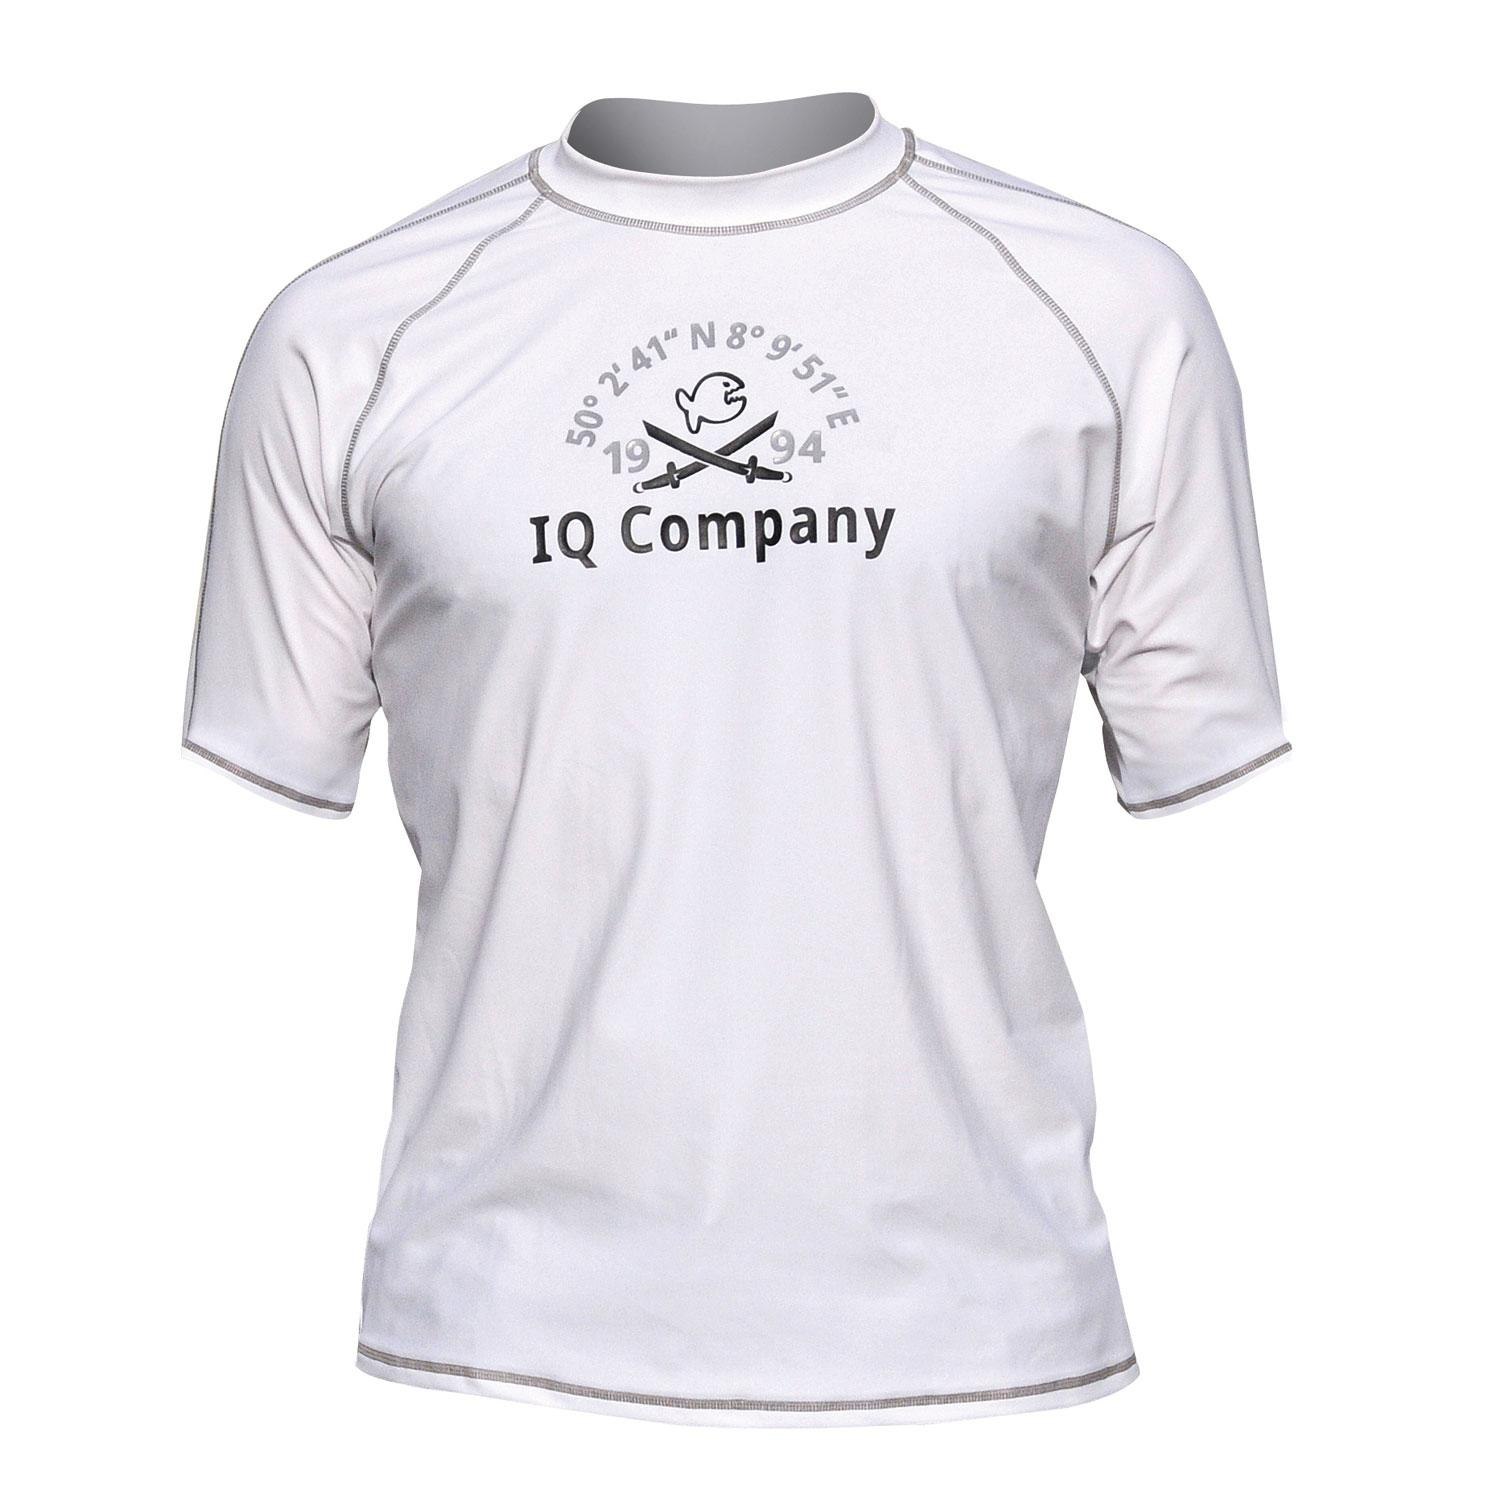 iQ-Company UV 300 T Shirt 94